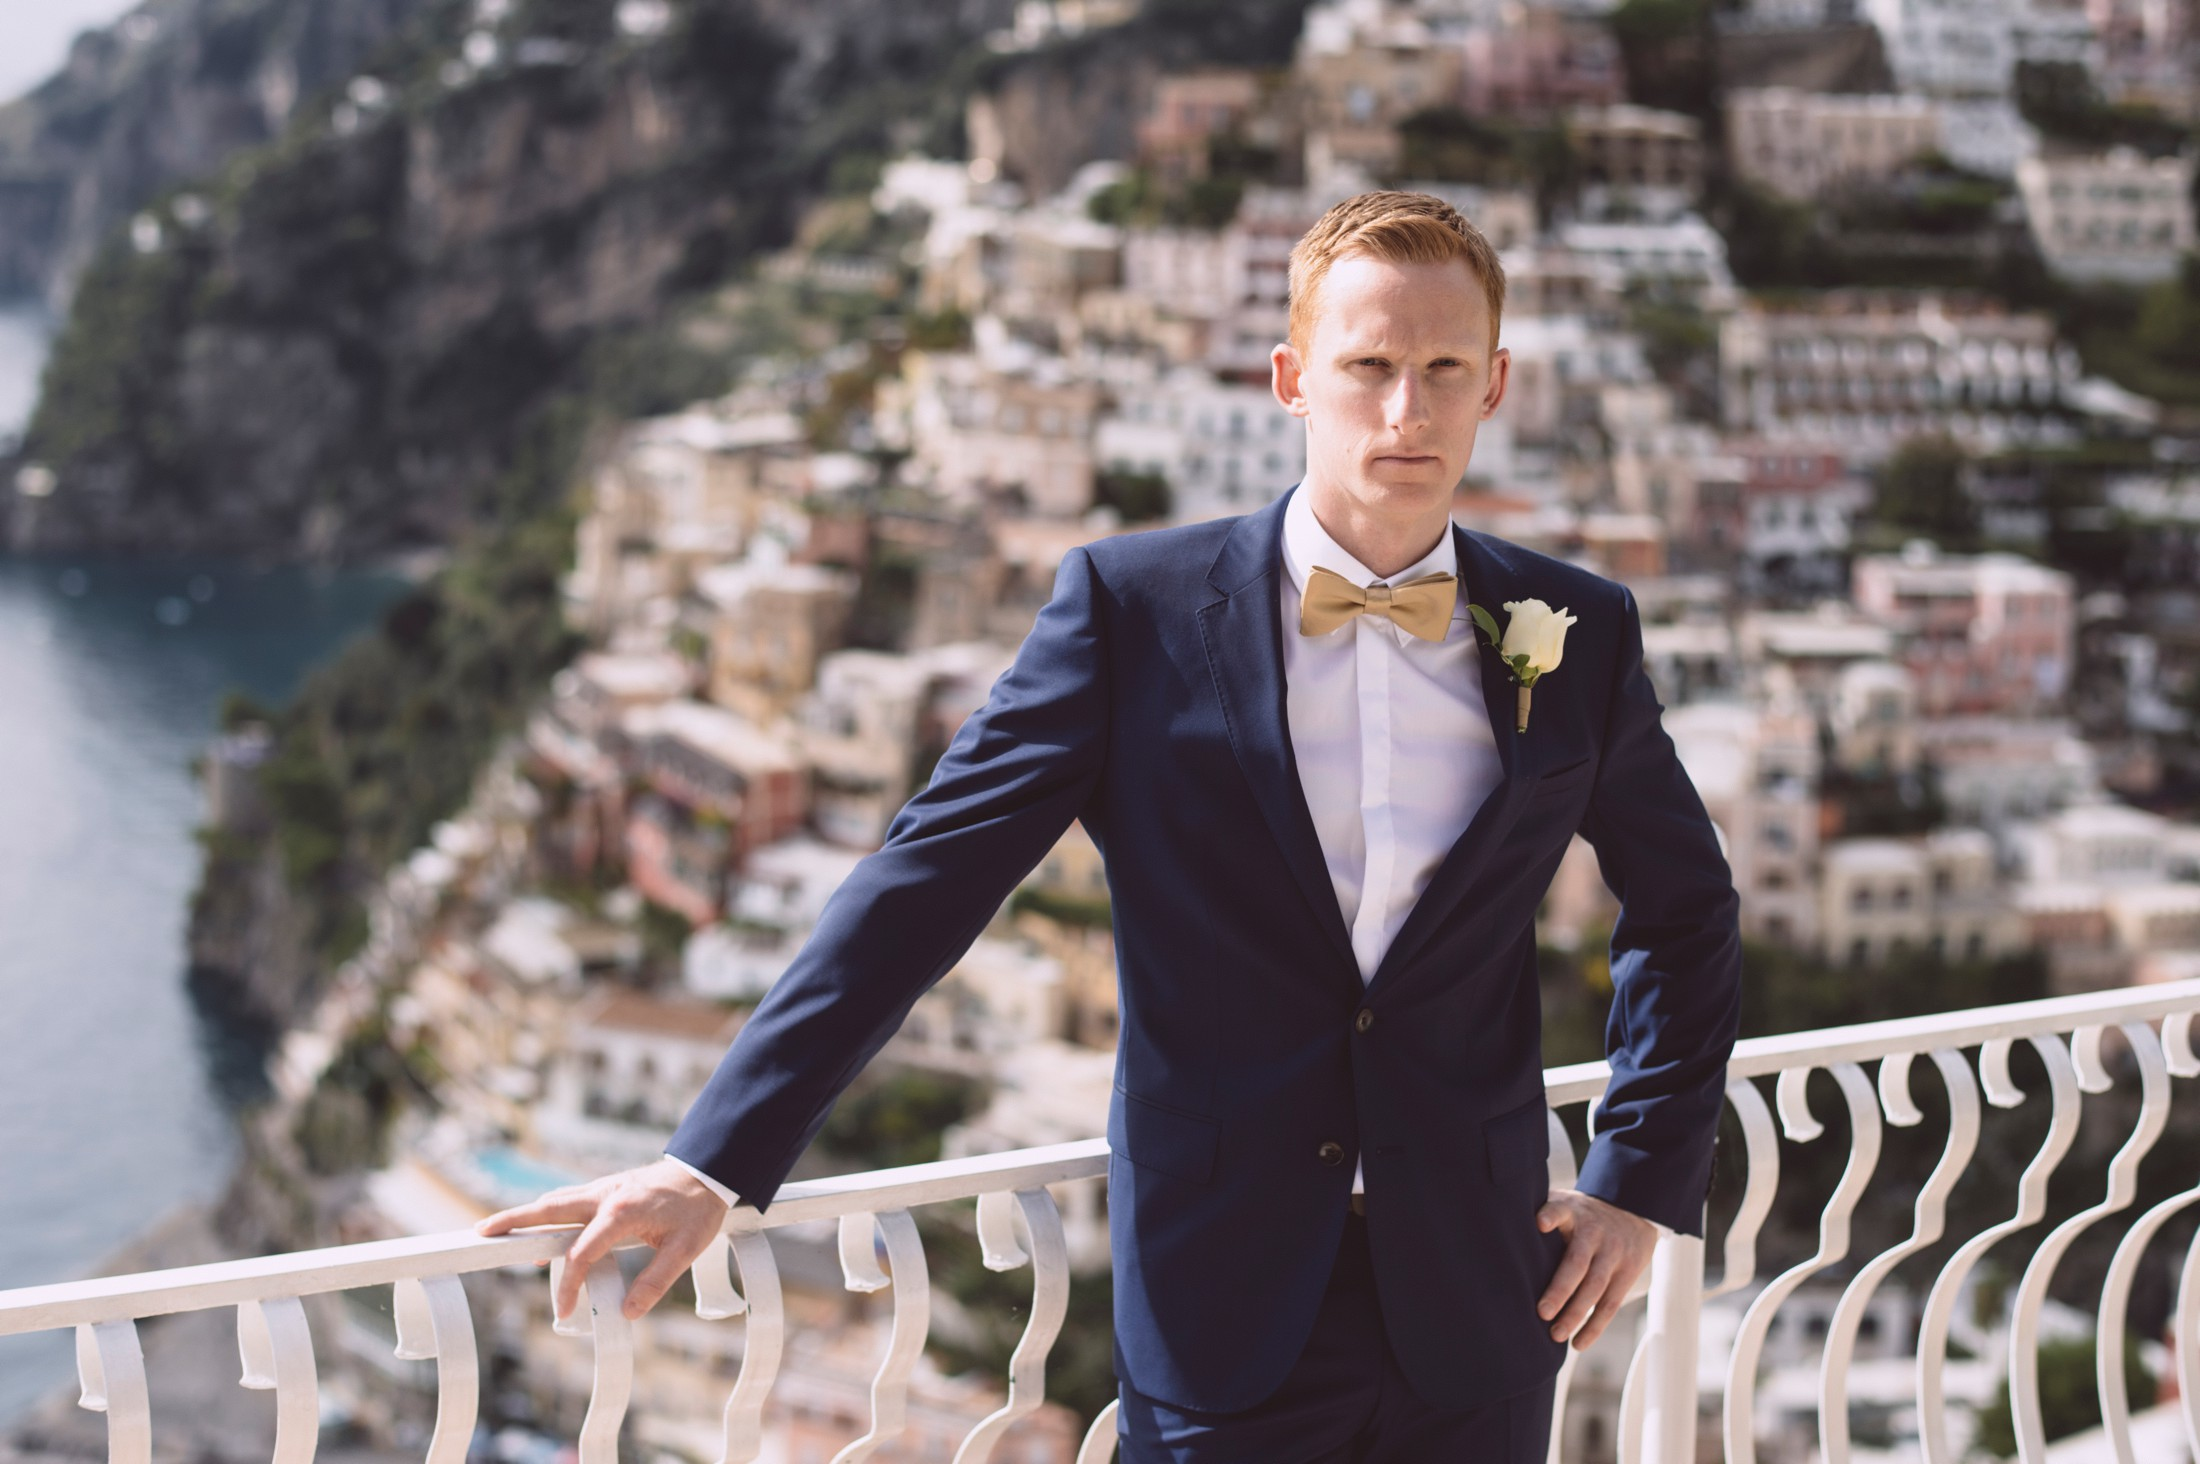 positano wedding groom's portrait with positano on the background